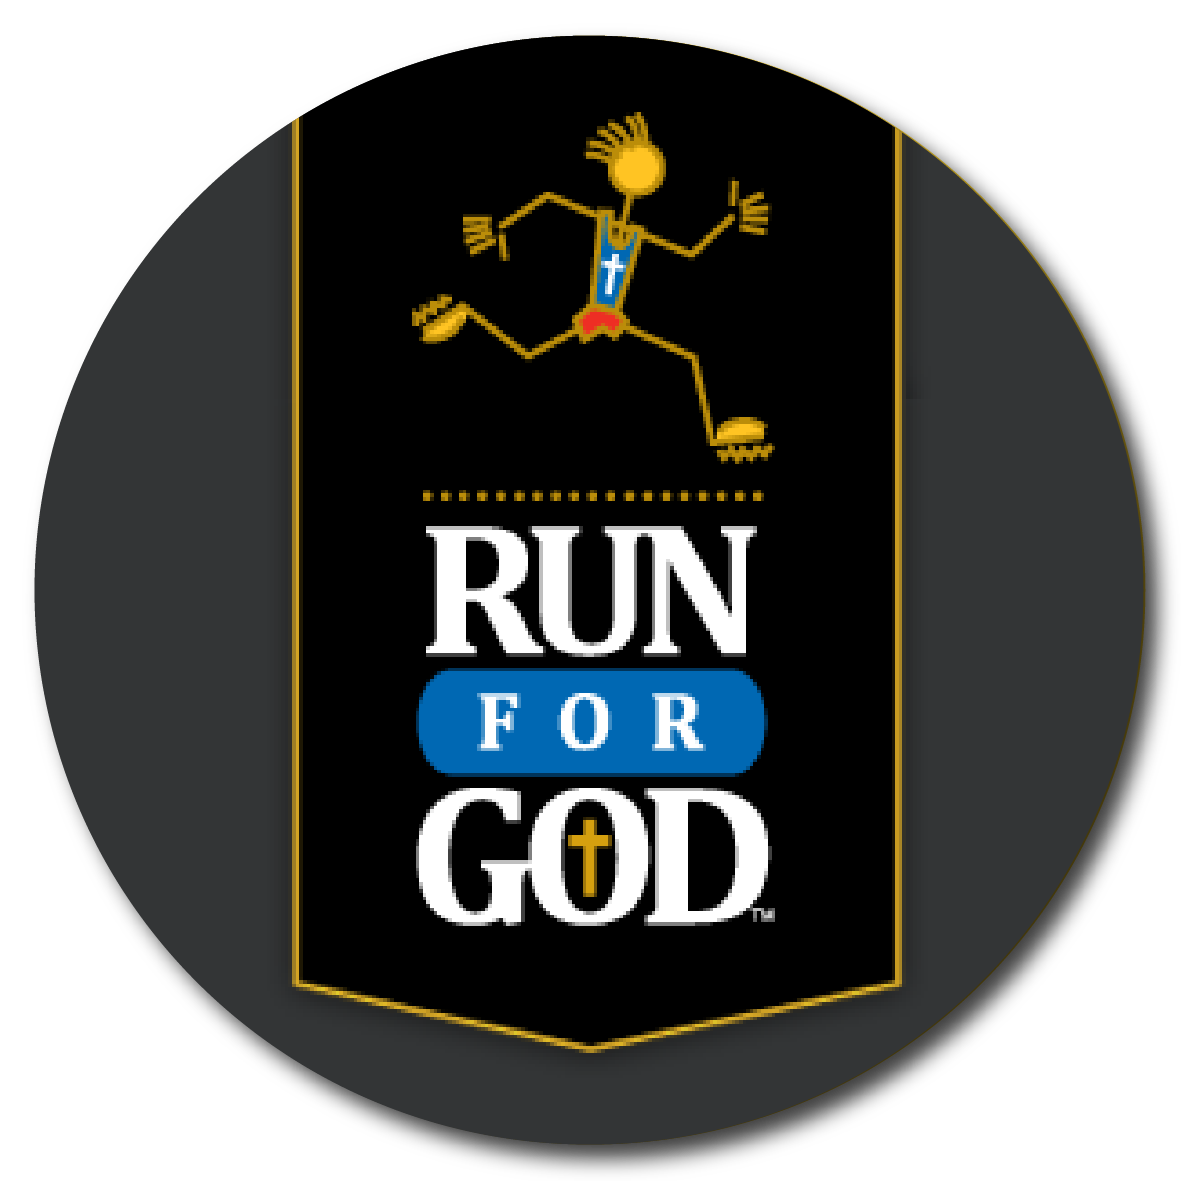 run for god@2x.png